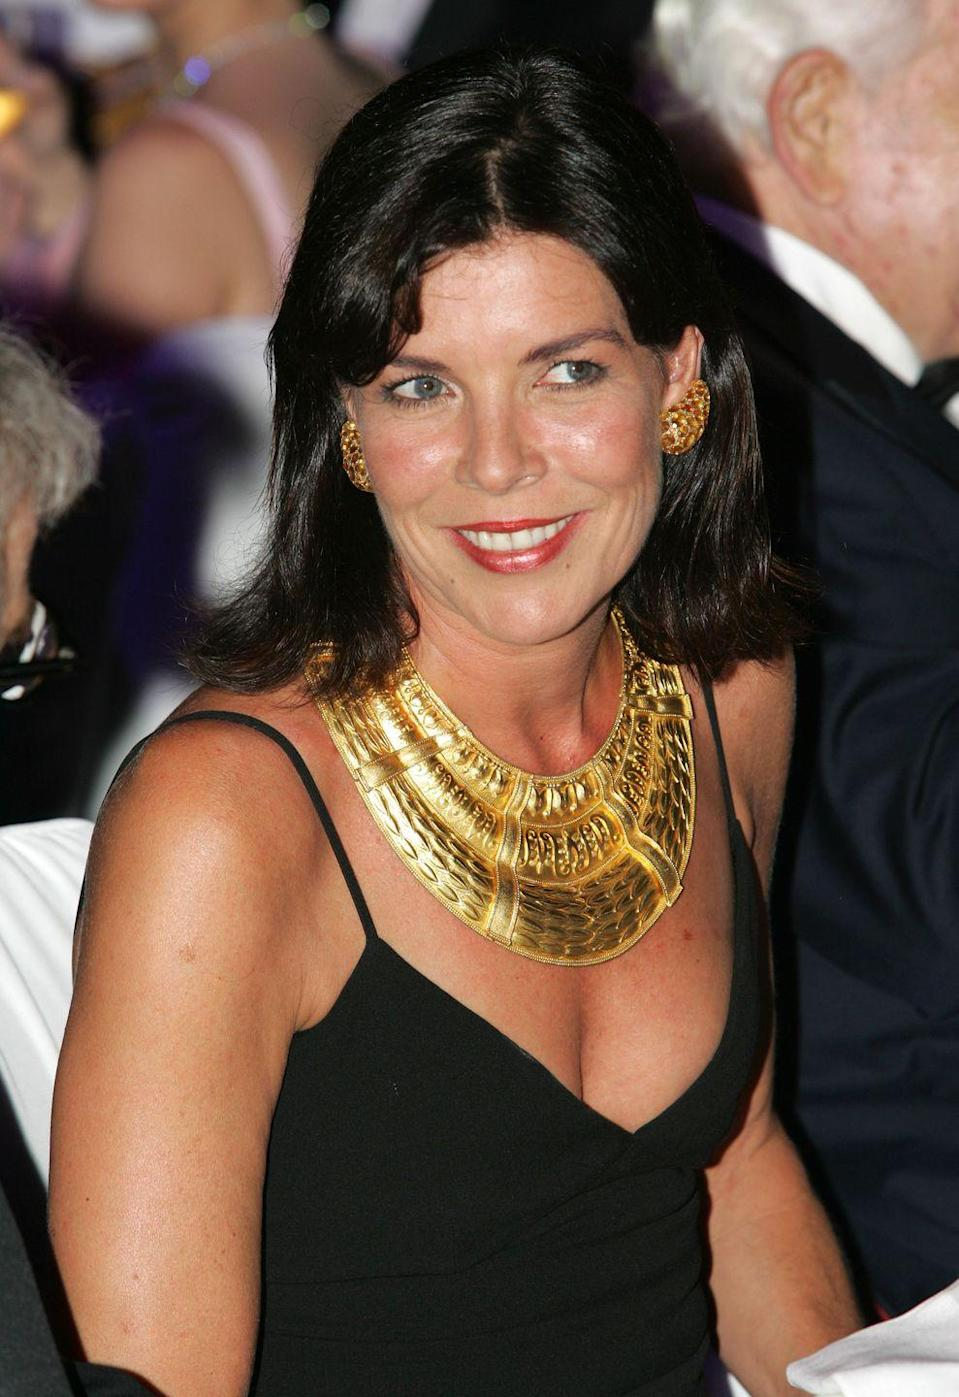 <p>Princess Caroline in a stunning gold collar at the Red Cross Ball in 2004.</p>